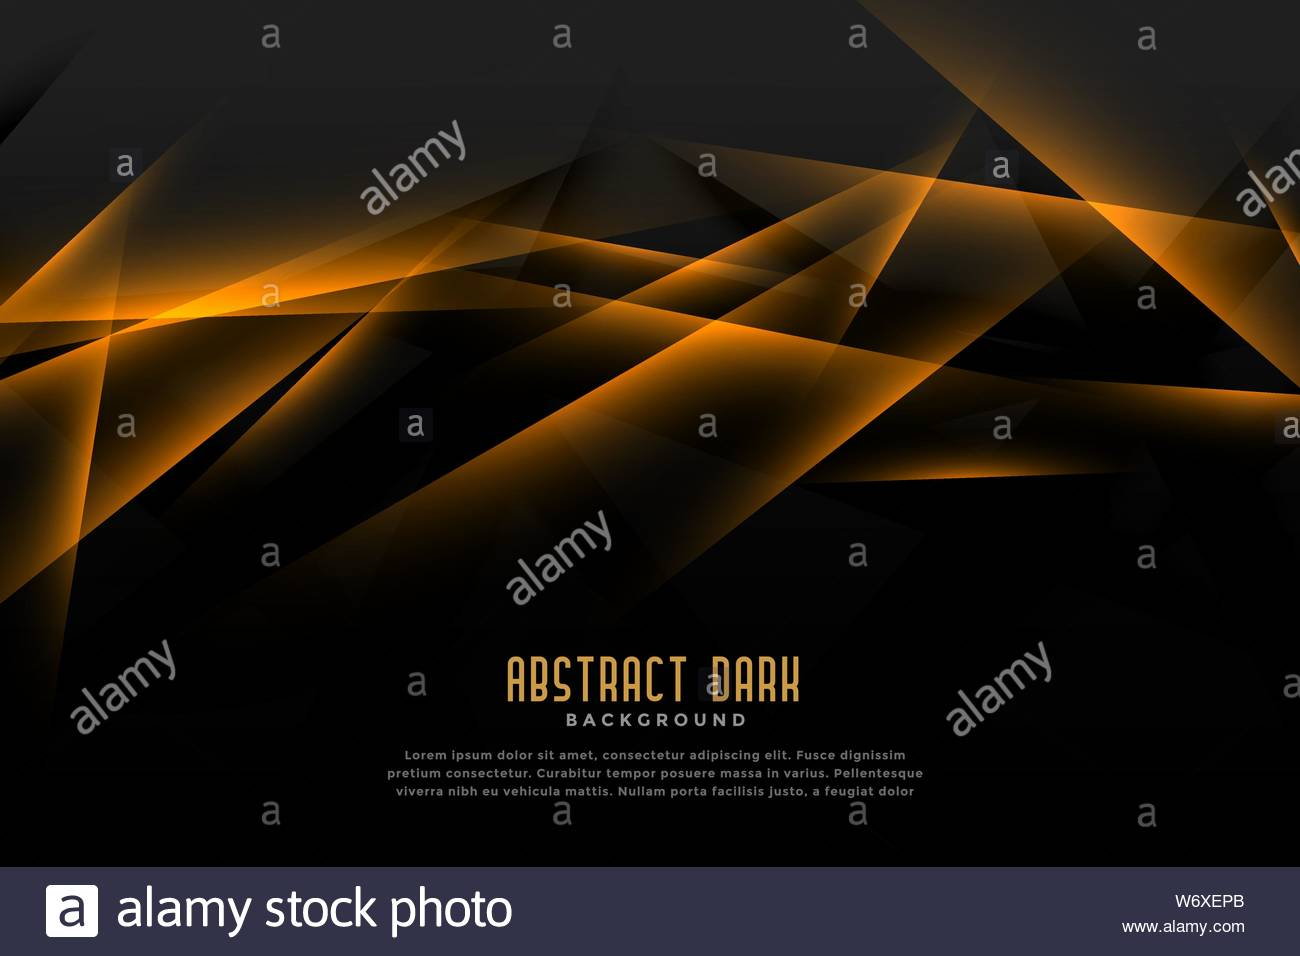 Abstract Black And Golden Background With Light Line Effect Stock Vector Image Art Alamy